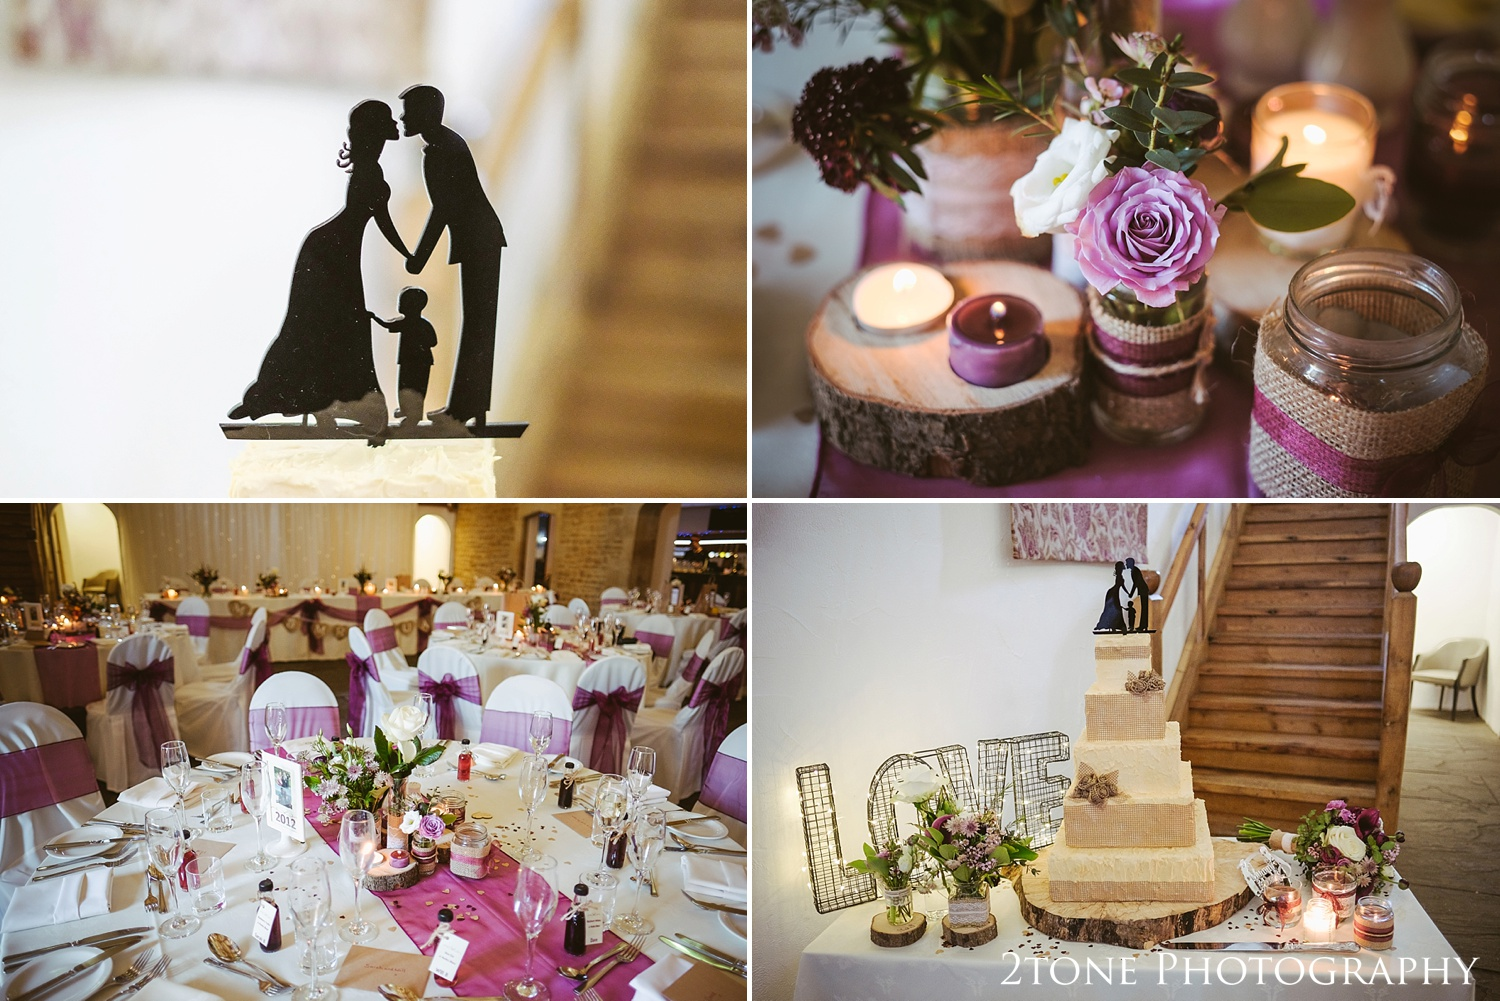 Wedding details at Haselbury Mill and the Old Tythe Barn in Somerset by www.2tonephotography.co.uk